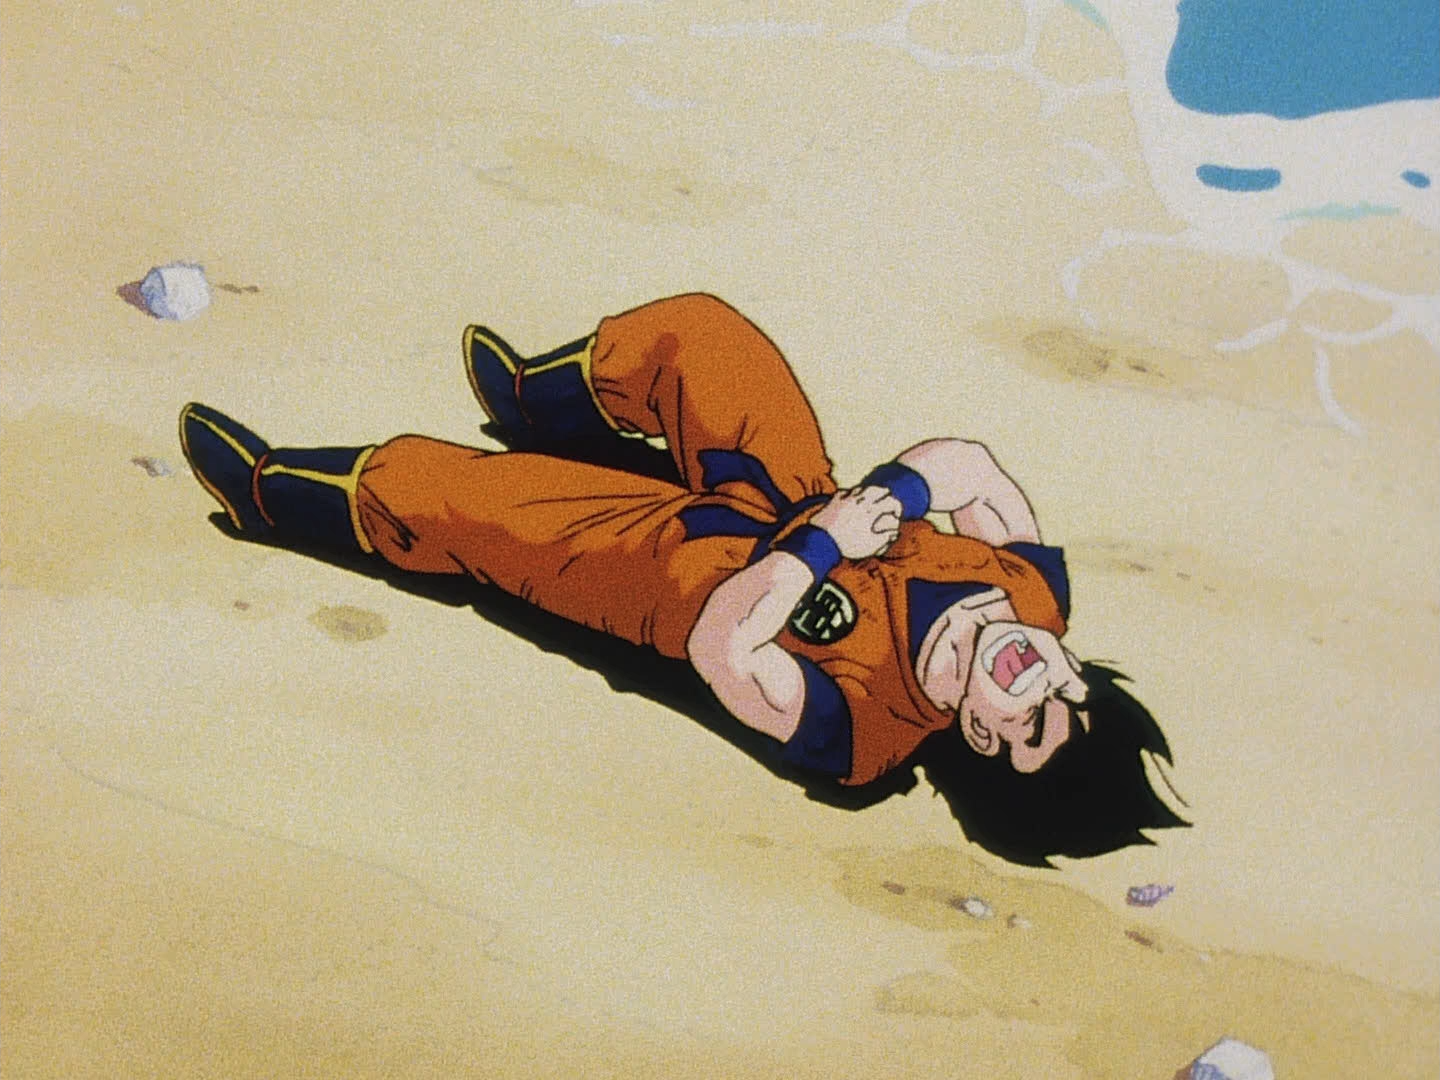 169 best images about Dragon Ball Z on Pinterest | Black goku ...